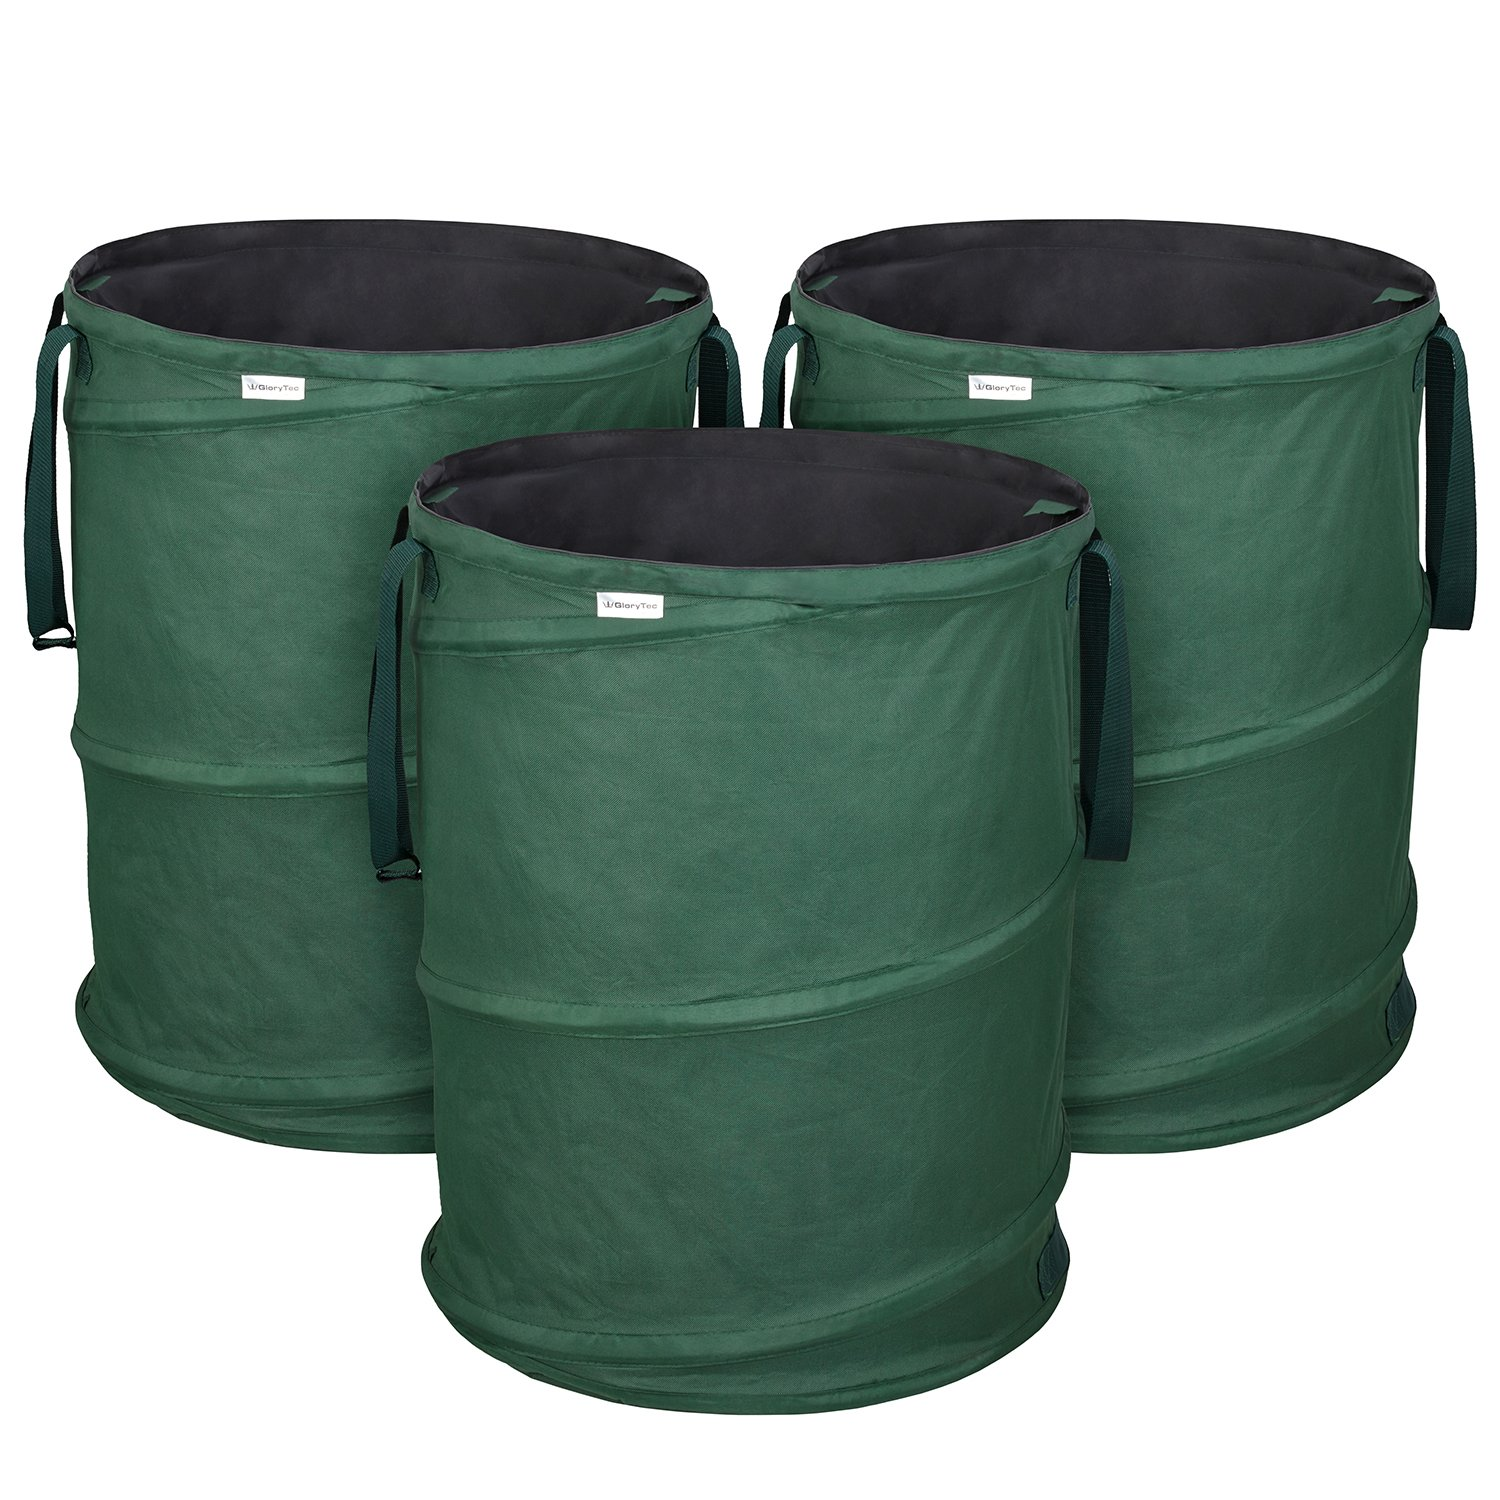 GloryTec 3-Pack Garden Bags 45 Gallons Each - Collapsible Self-Erecting Gardening Bag - Comparative-Winner 2018 - Reusable Trash Can for Leaf, Lawn and Yard Waste - Premium Bagster with Spring Bucket